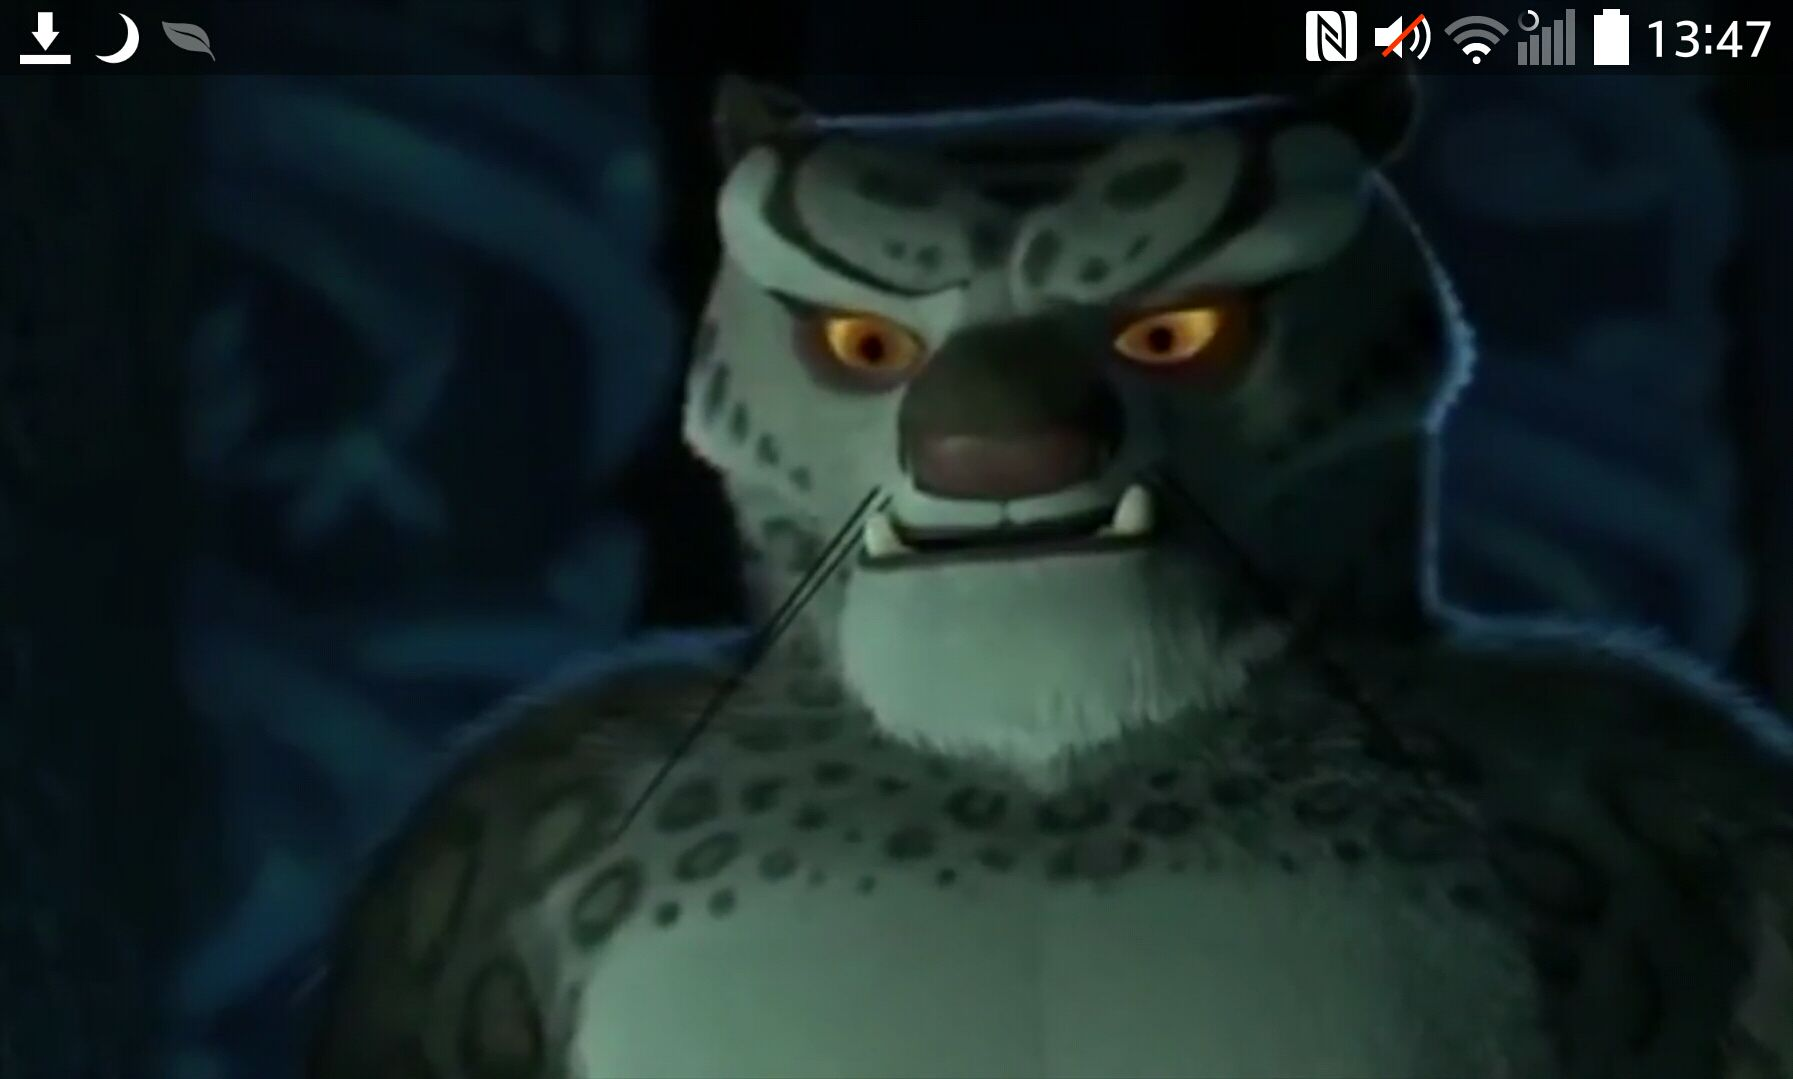 Kung Fu Panda 4 The Return And Love Of Tai Lung Chapter5 The Sparing Of The Tiger And The Snow Leopard Wattpad